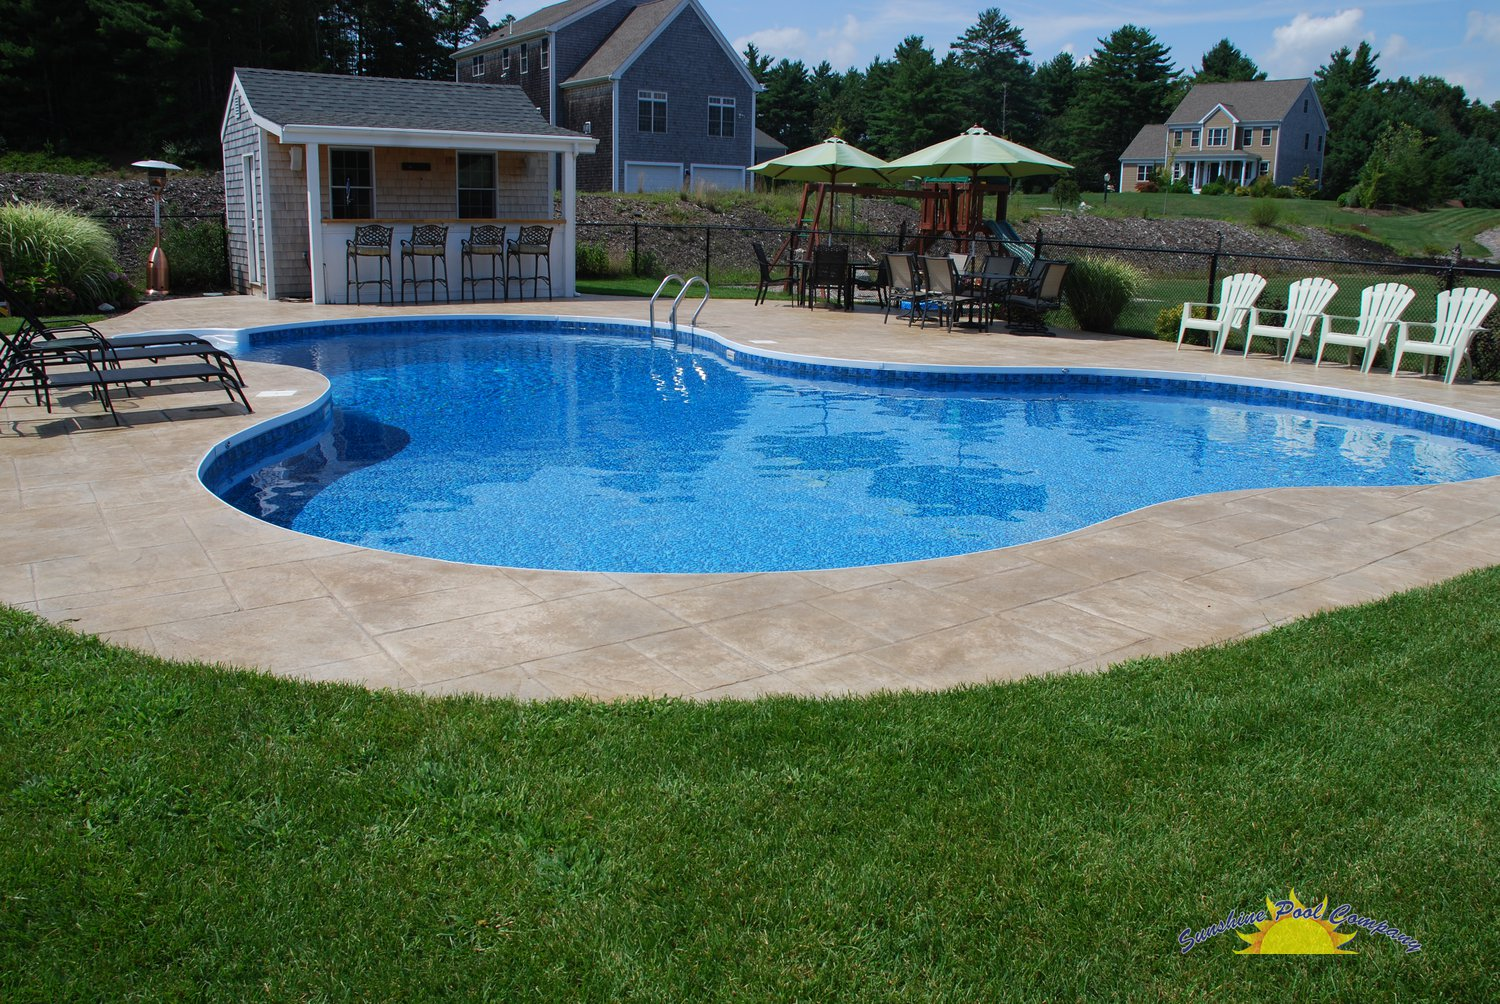 Sunshine pool company new pools in ground for Ground swimming pools